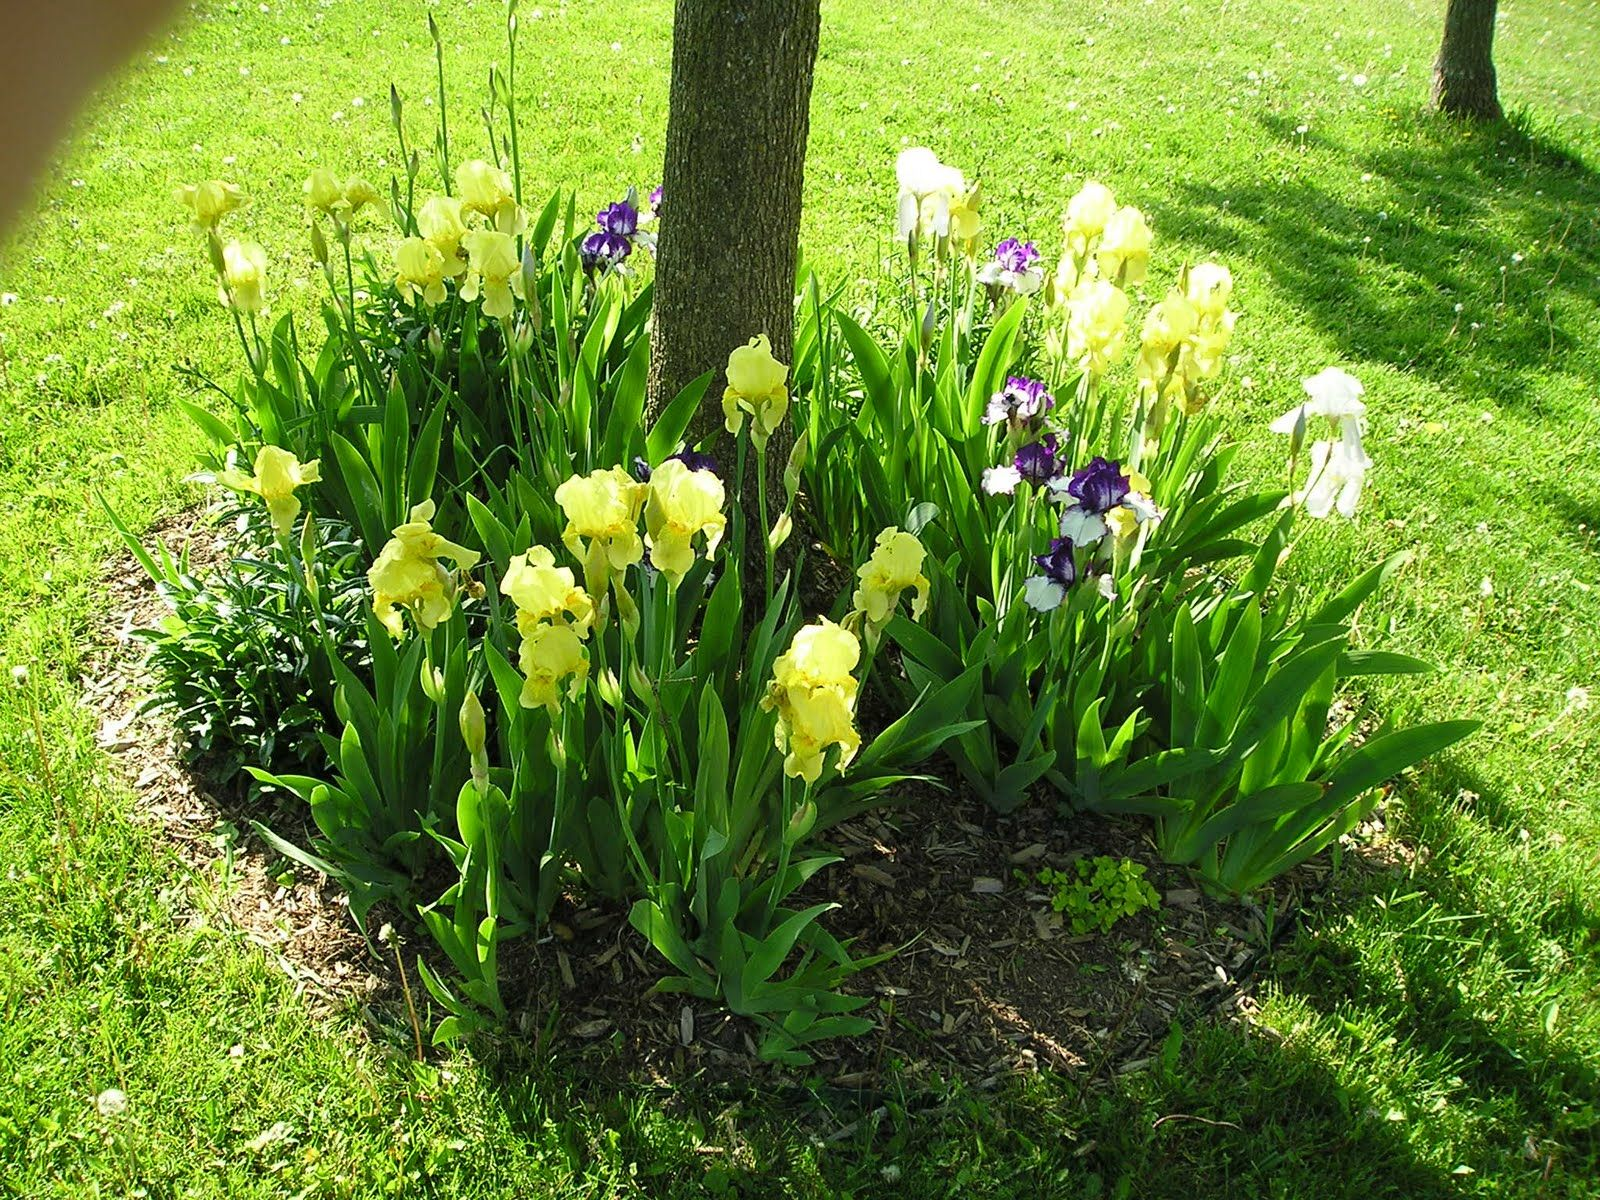 Flower garden ideas for under a tree - Idea For Plant Around Tree The Proficient Needle Happy Victoria Day Weekend